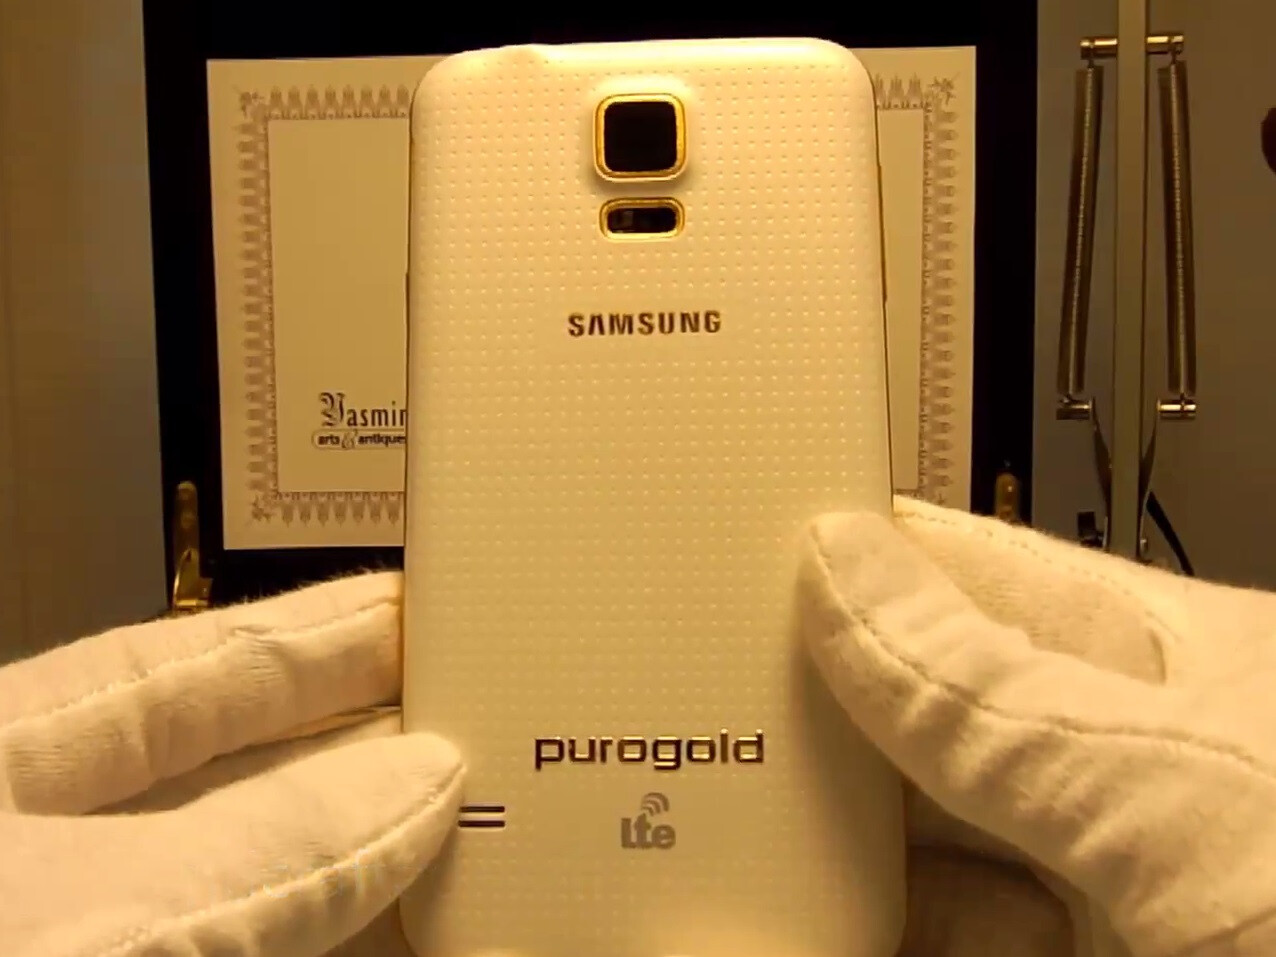 10 smartphones and accessories made of pure gold